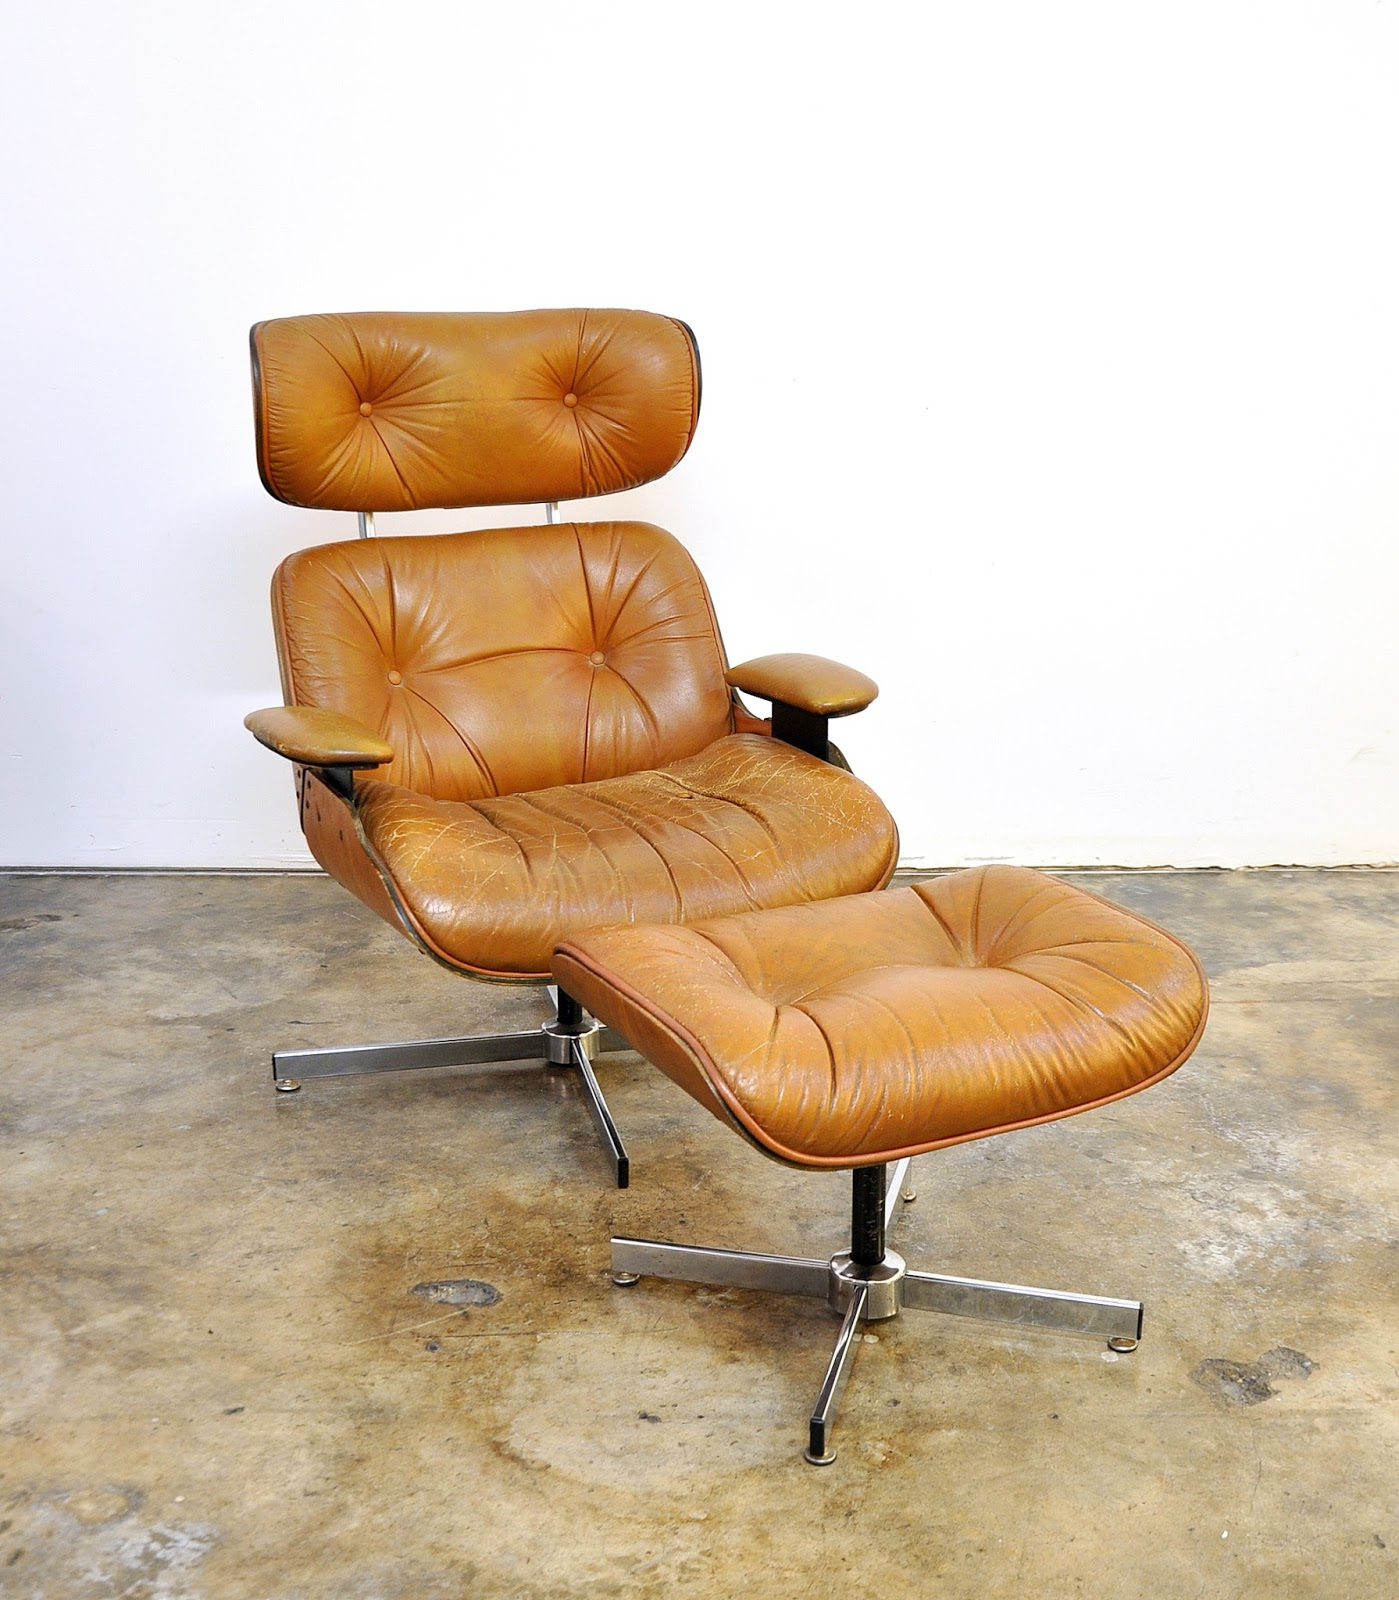 select modern frank doerner for selig eames style butterscotch lounge chair ottoman. Black Bedroom Furniture Sets. Home Design Ideas